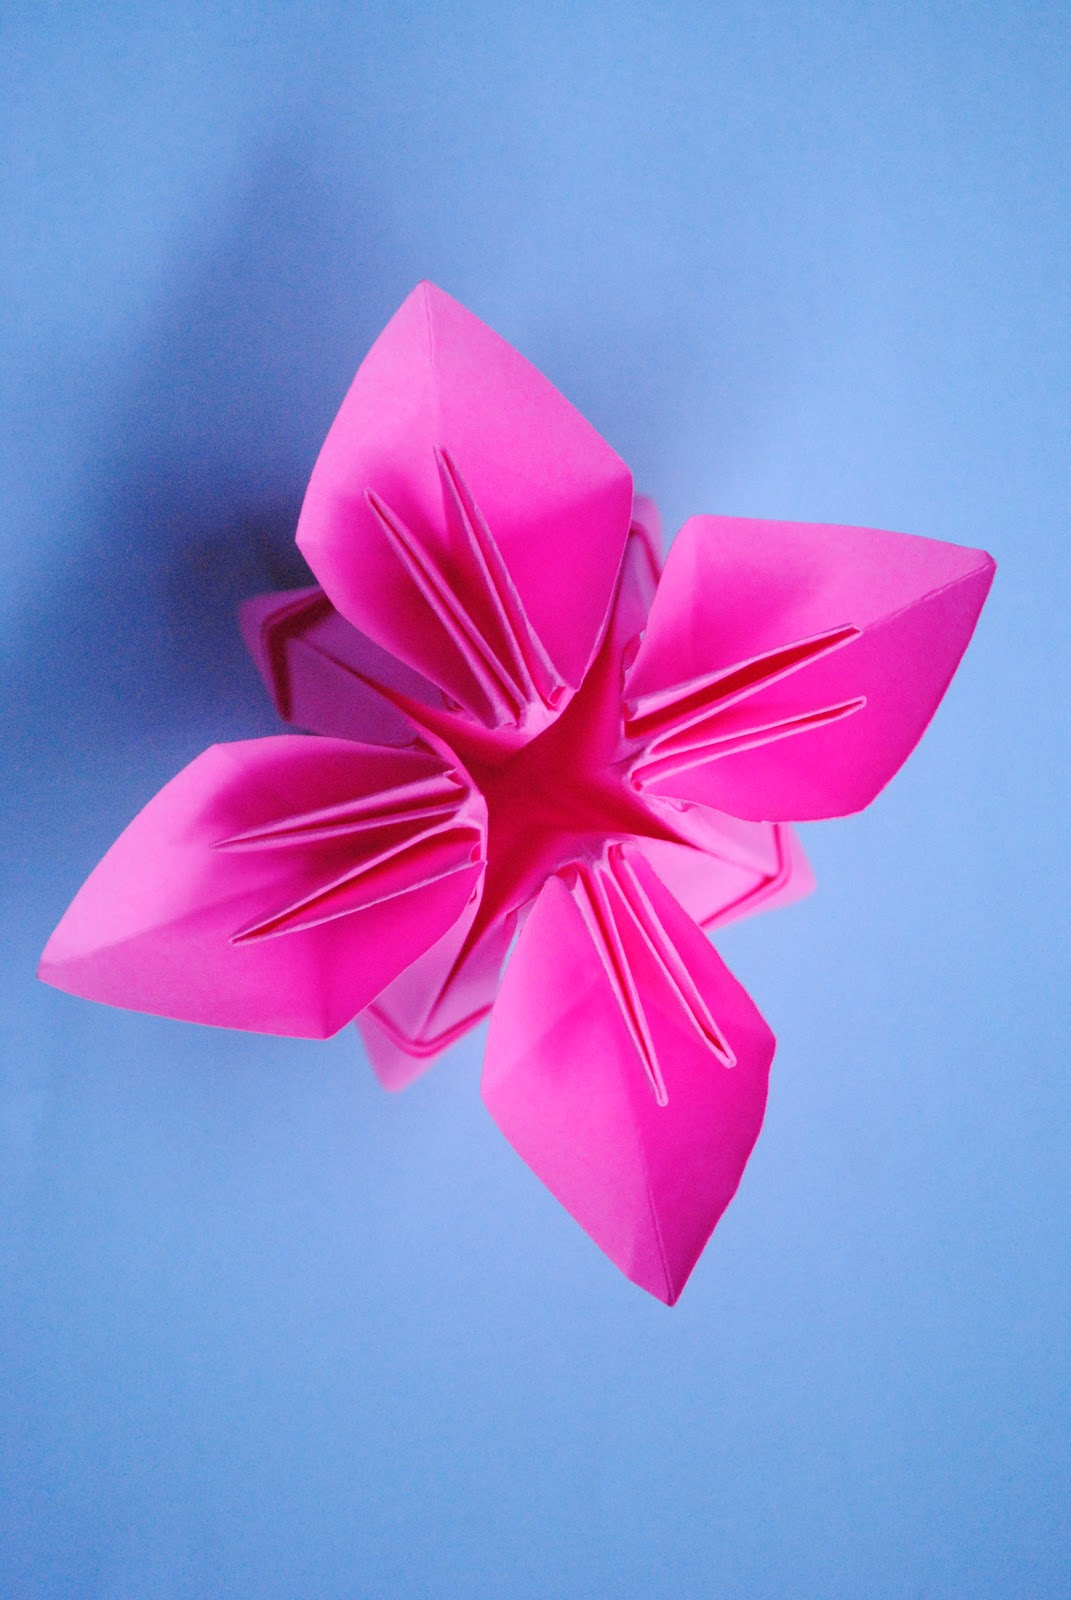 The Art Of Folding Honeycomb And My Own Flower Design